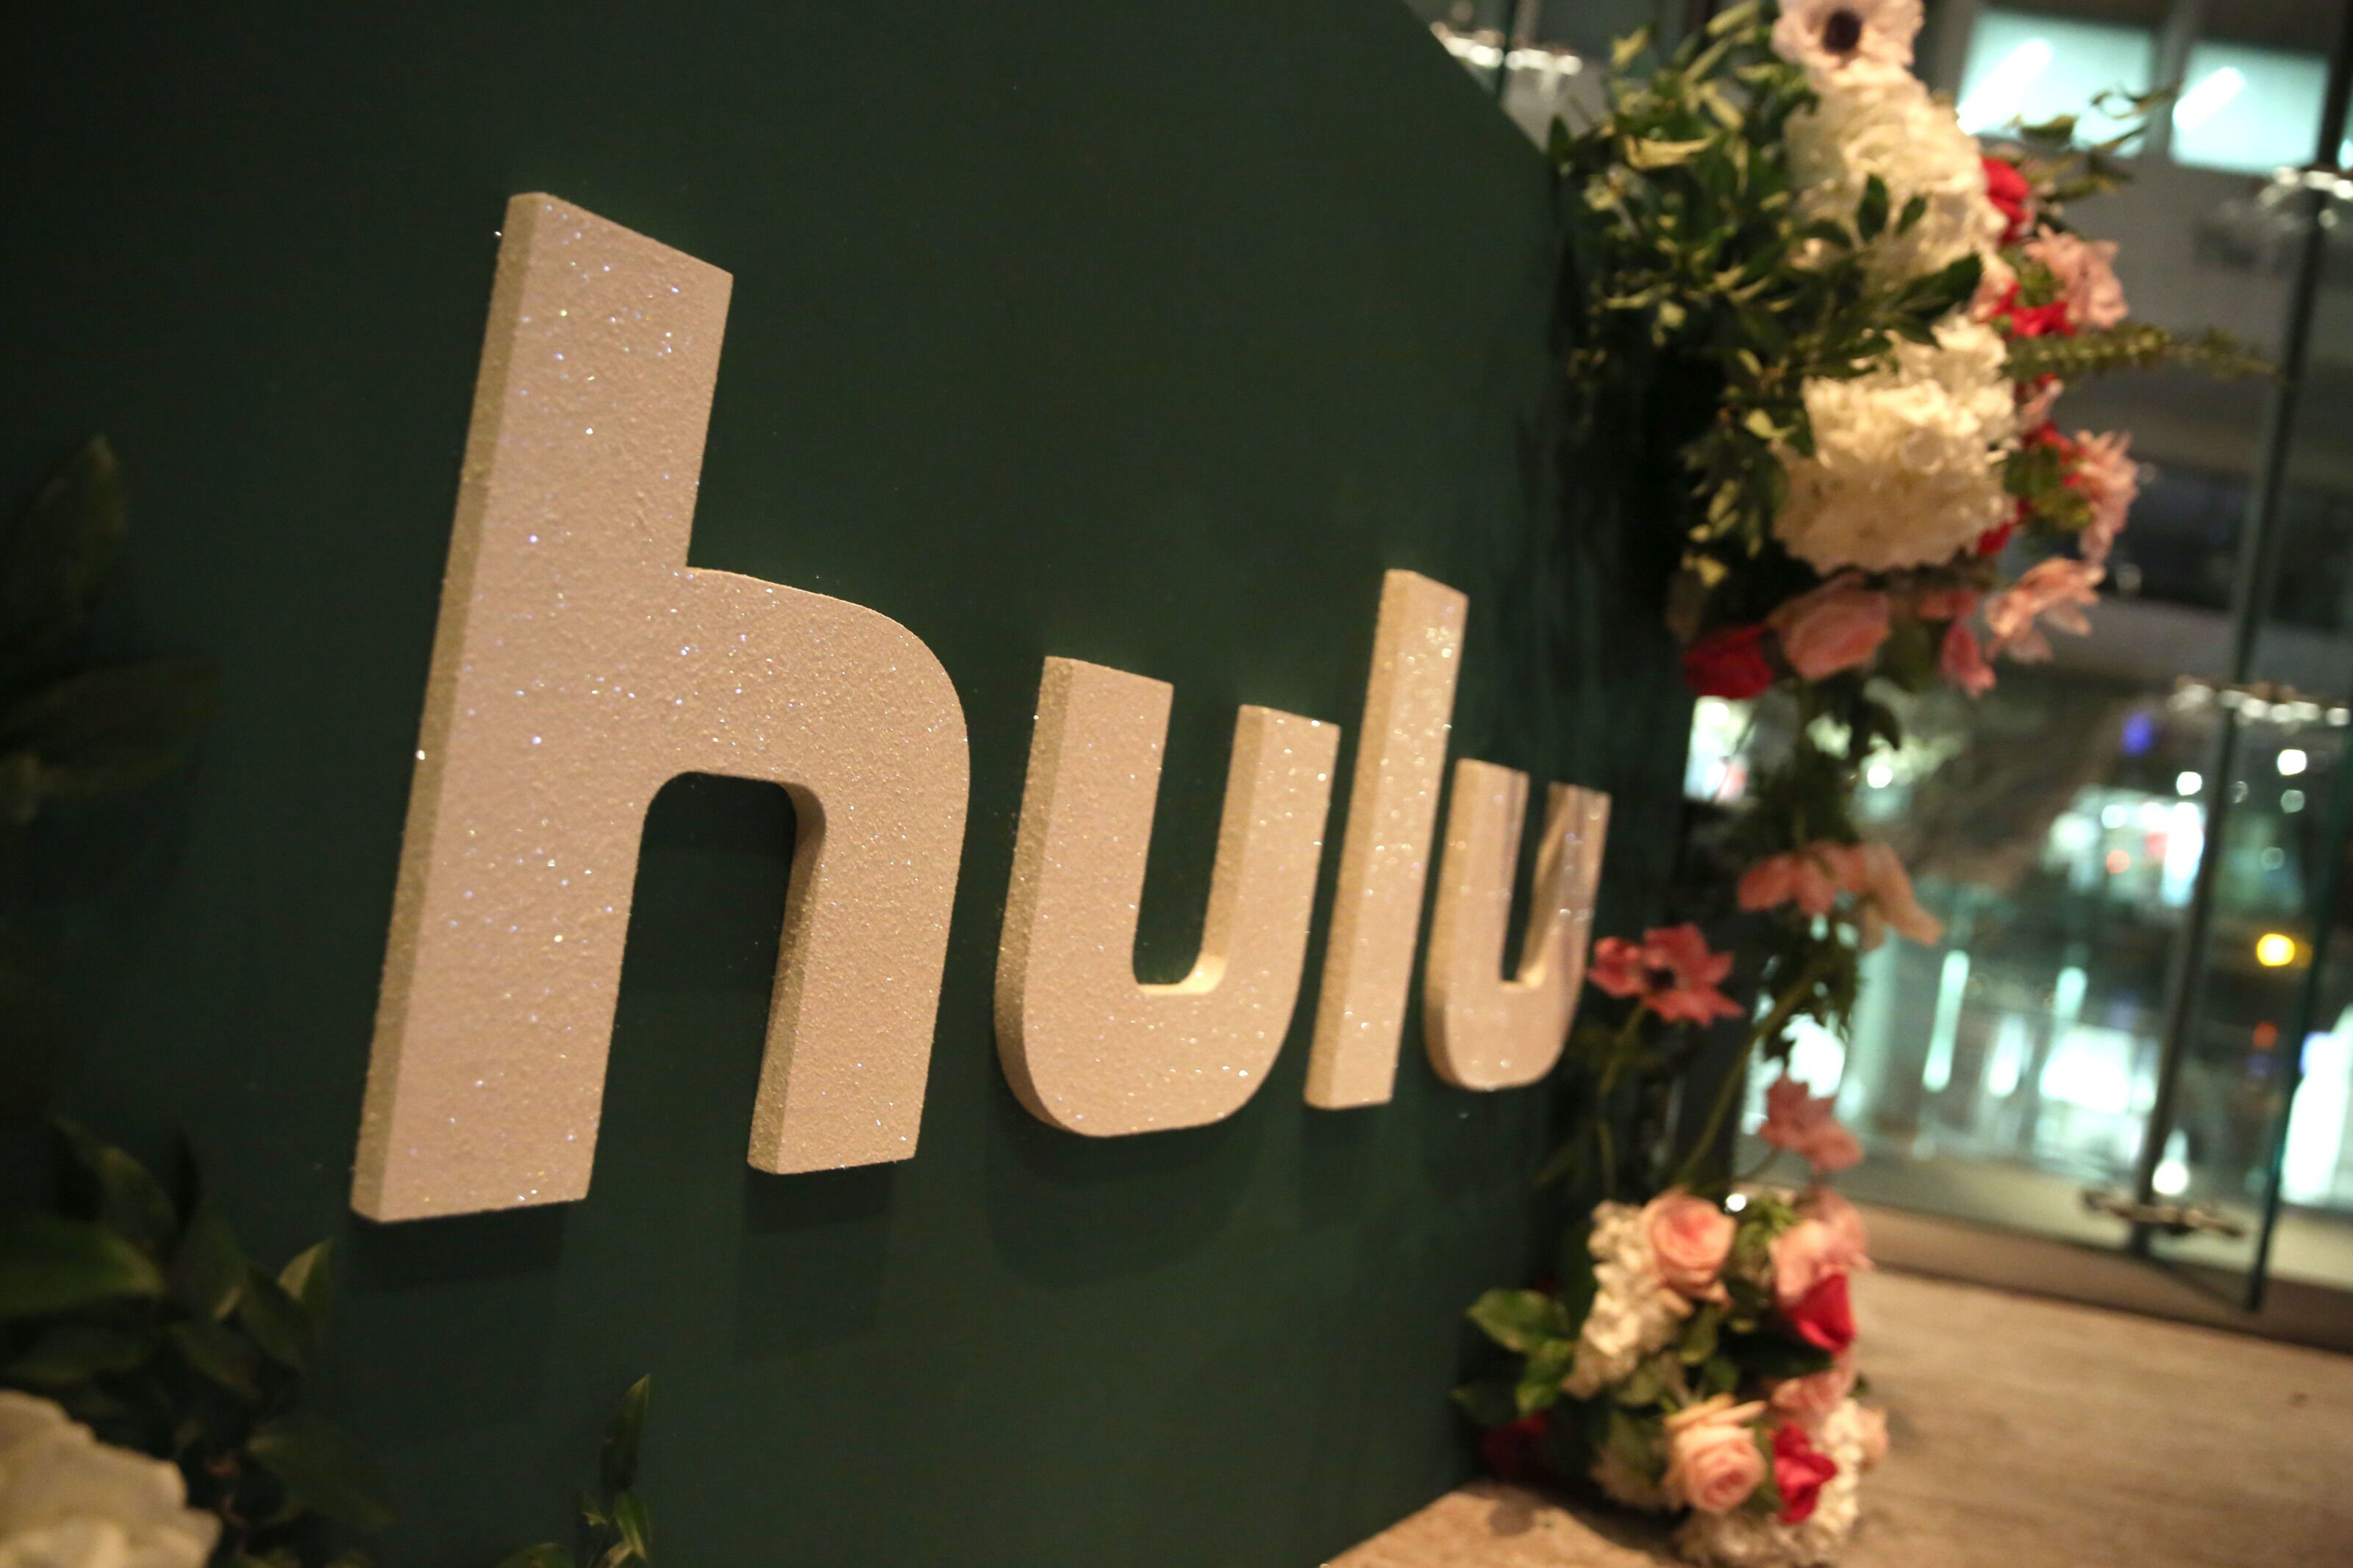 Hulu is now streaming horror television series The Unsettling